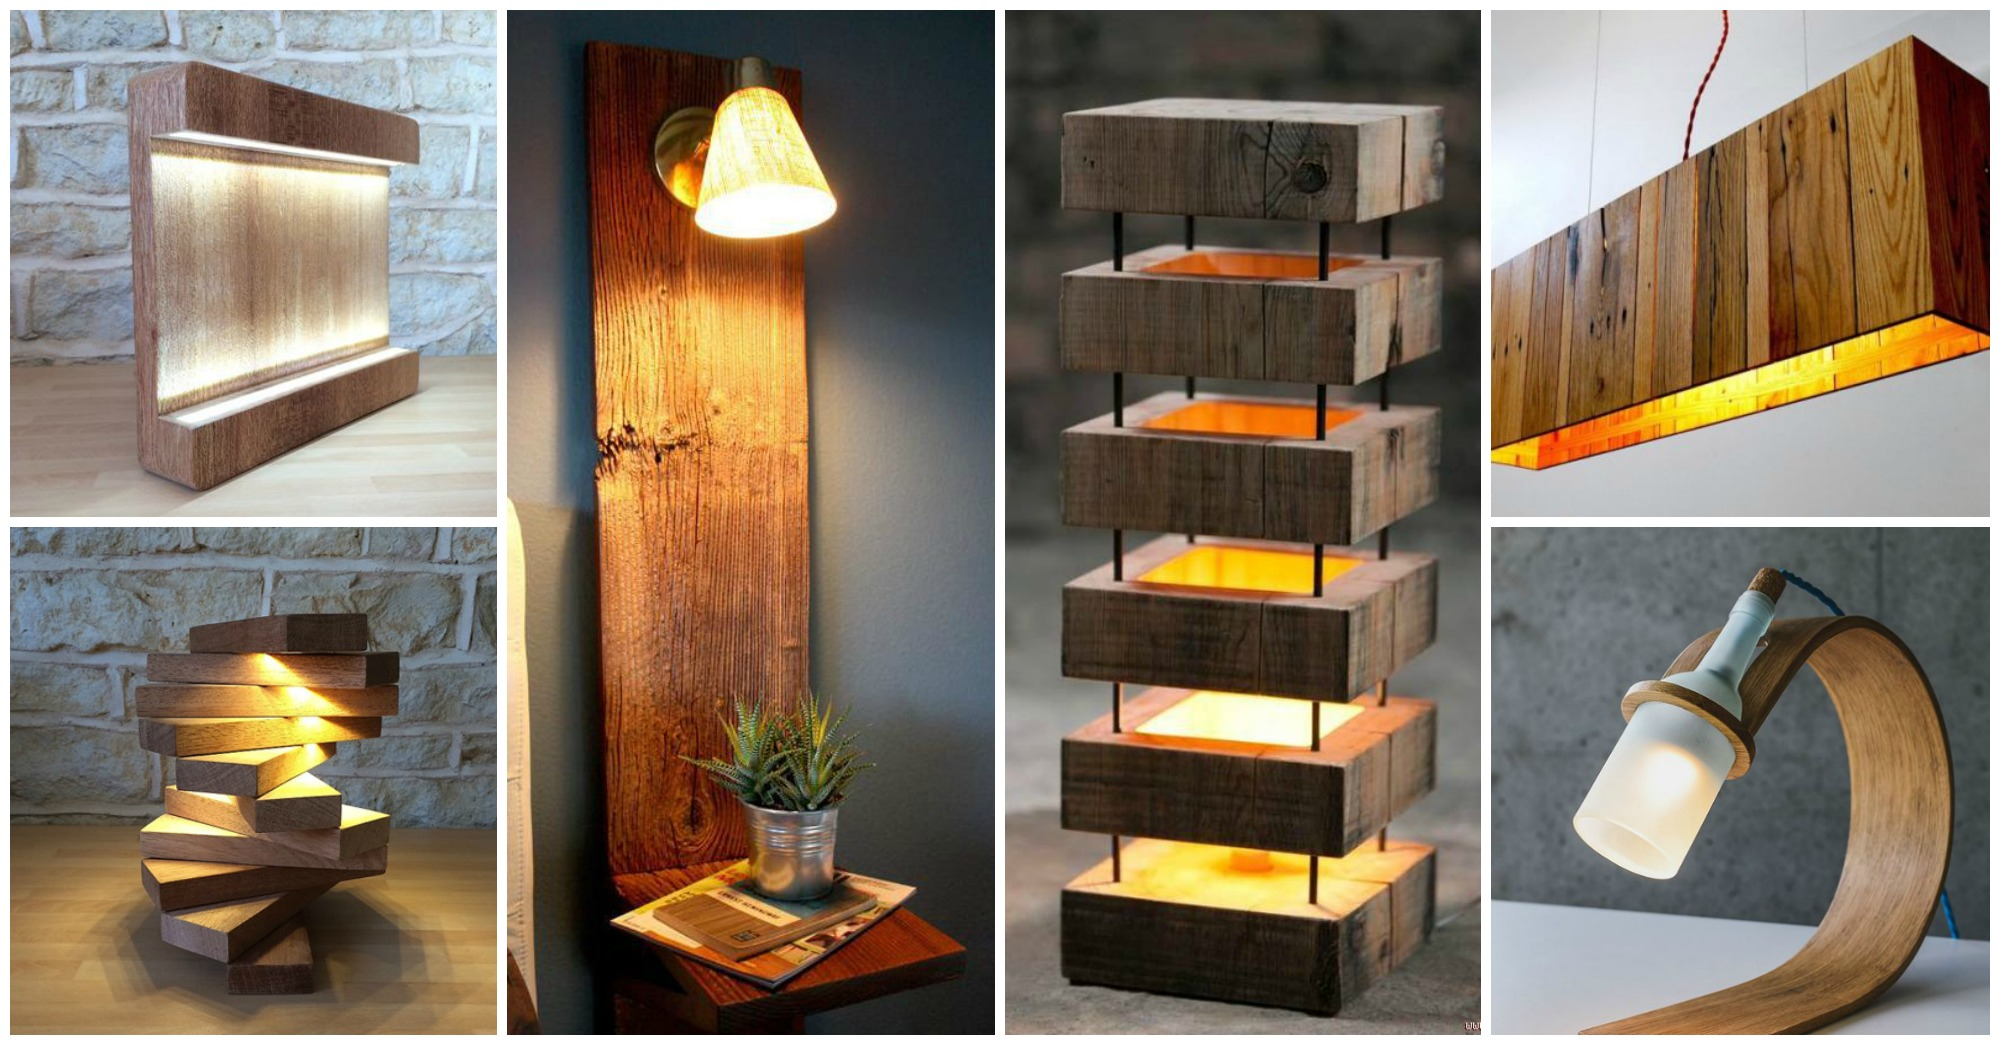 Inspiring Ideas On How To Turn Wooden Pallets Into Creative Lamps